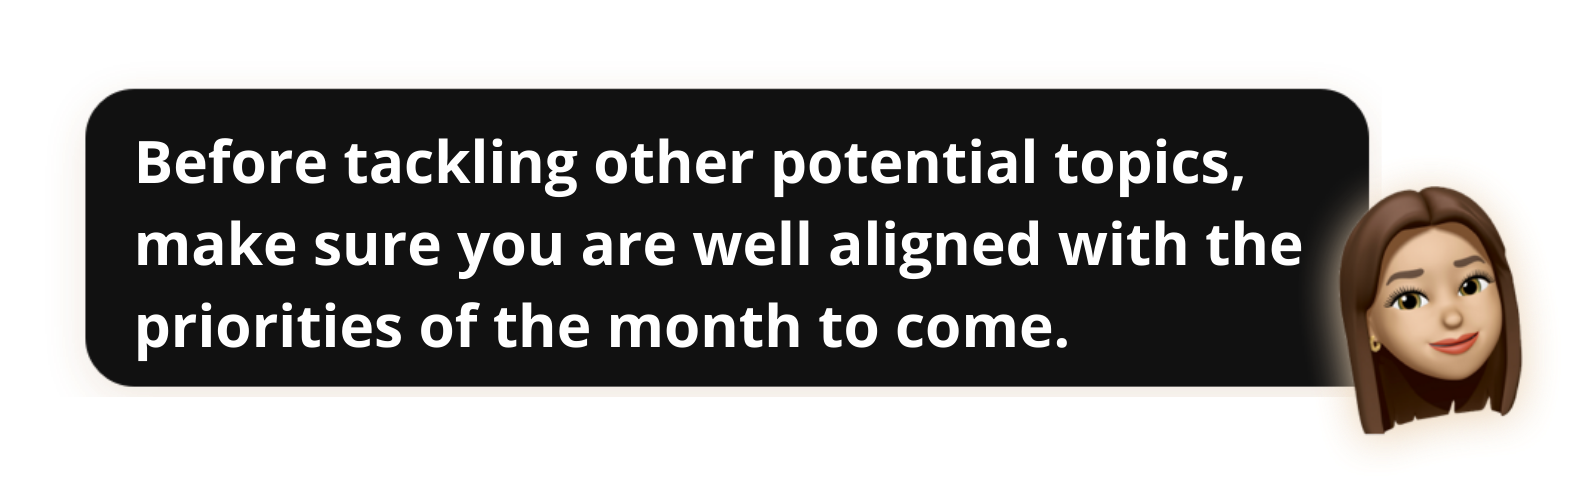 Before tackling other potential topics, make sure you are well aligned with the priorities of the month to come - Popwork